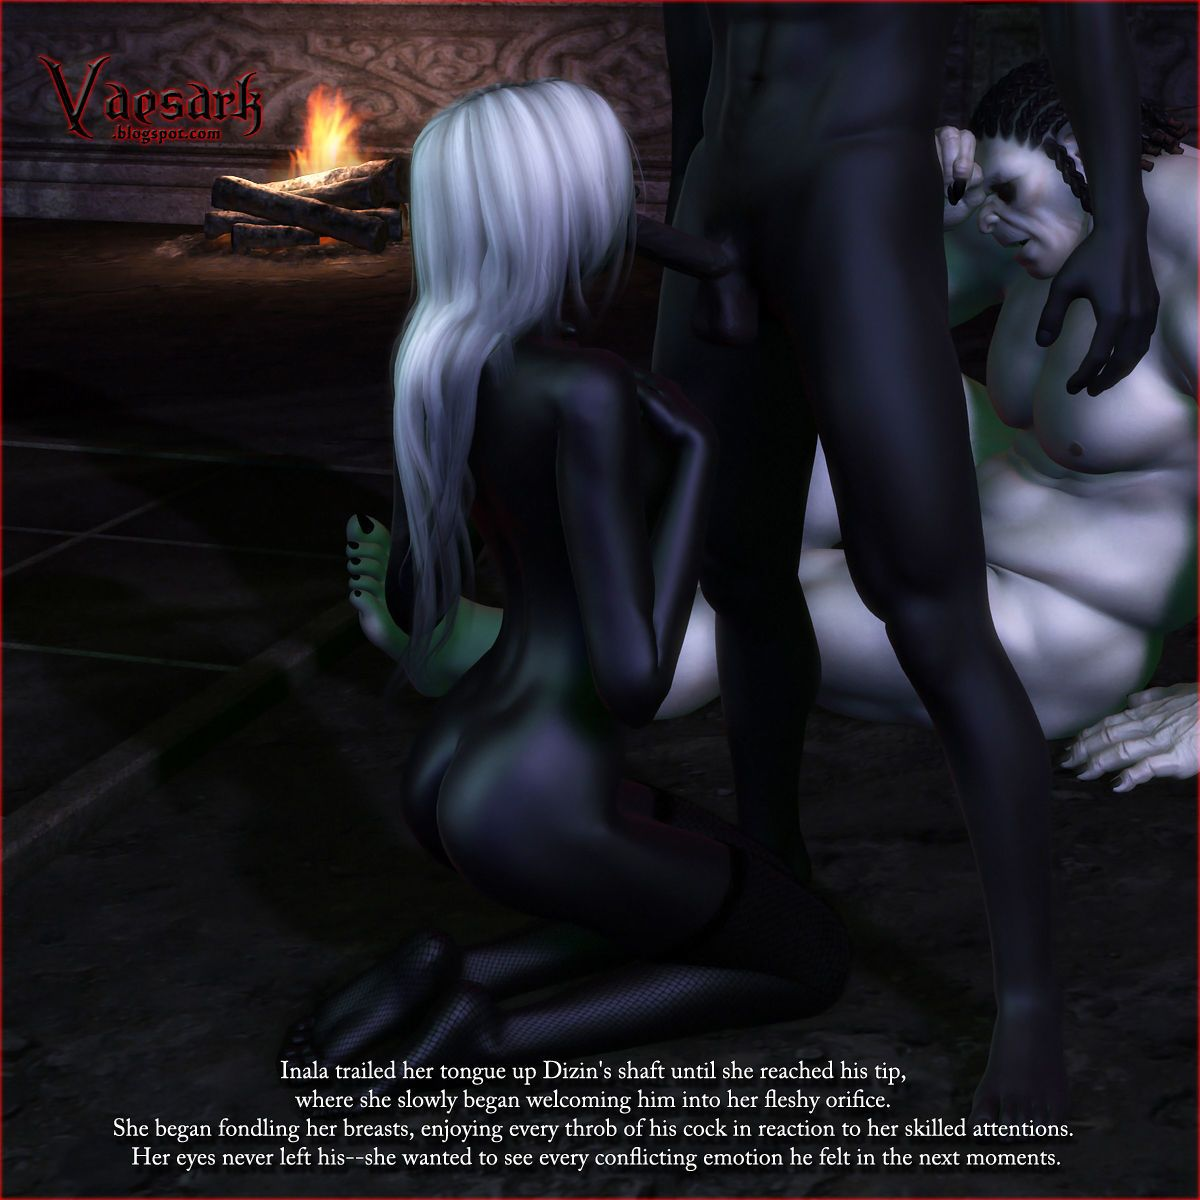 Fall of House Xil\'daar - Inala- Vaesark works - part 2